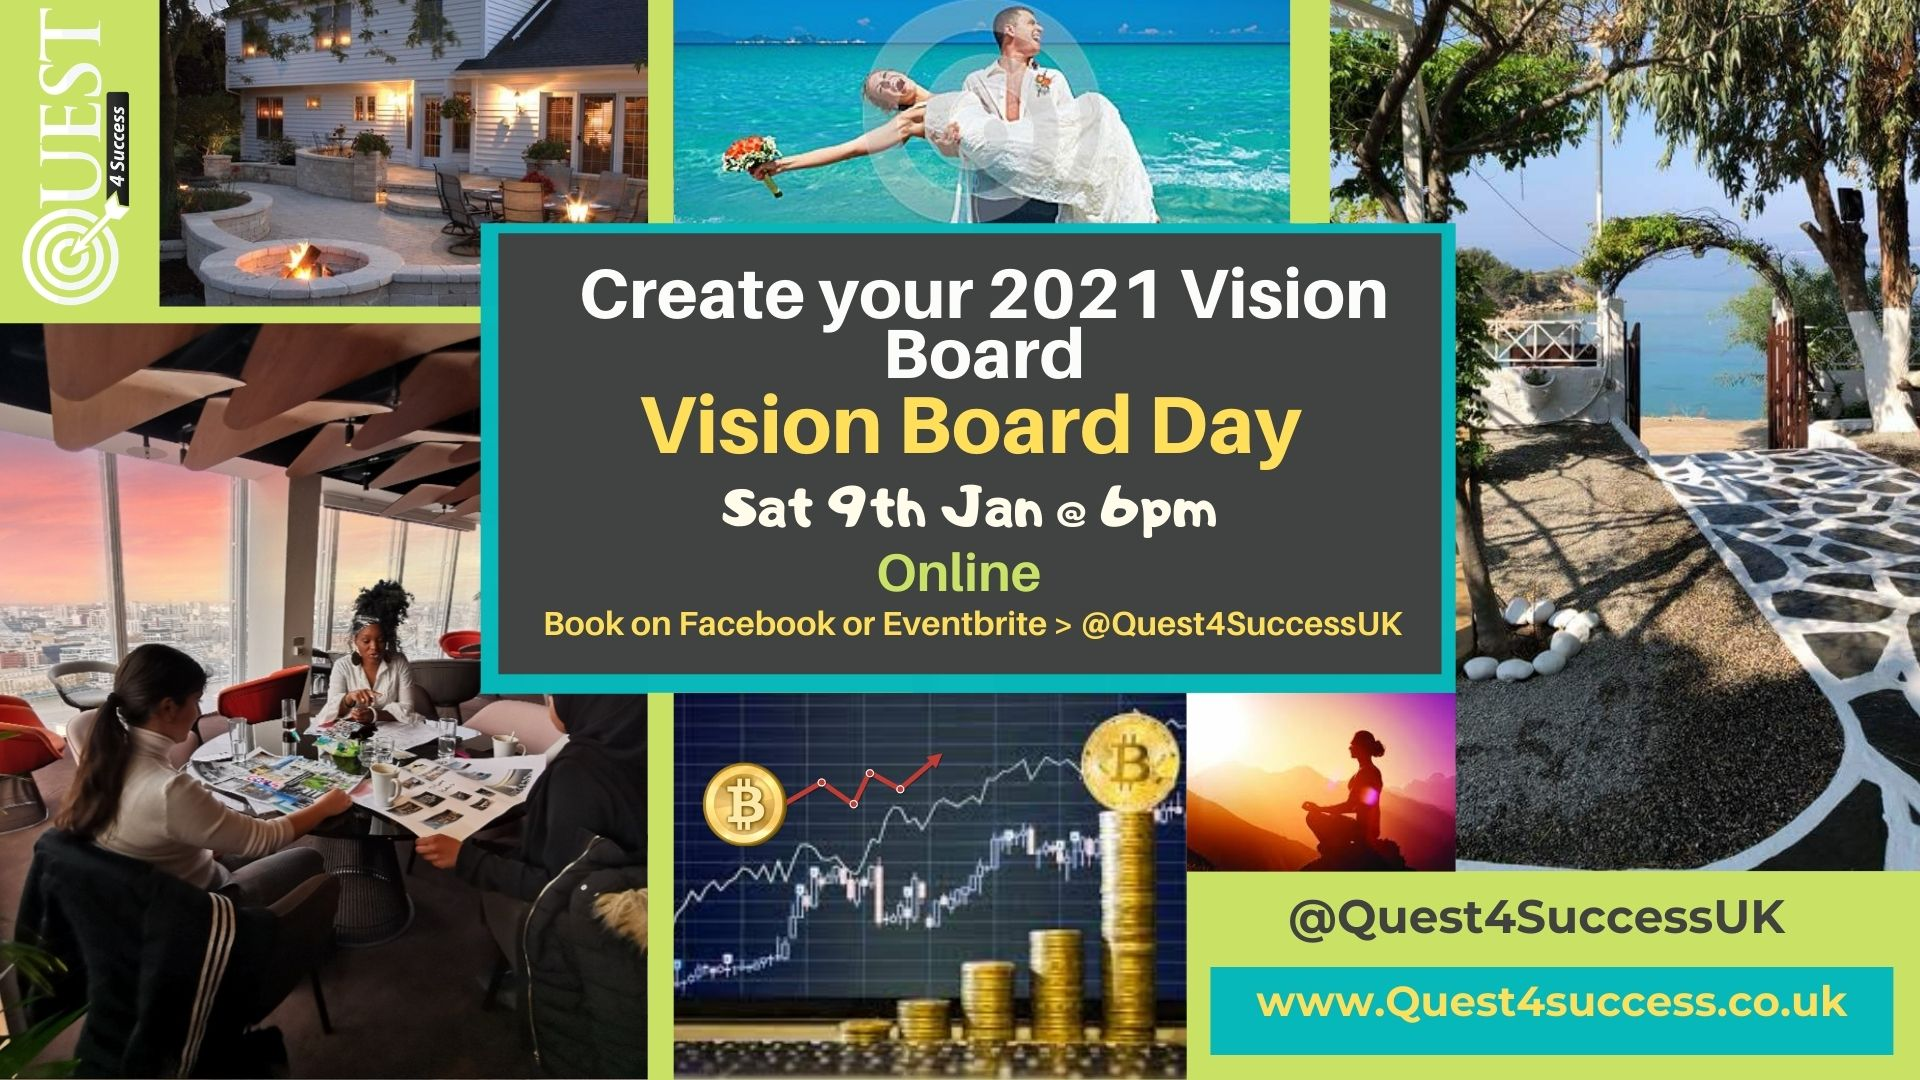 Online Vision Board Workshops 2021